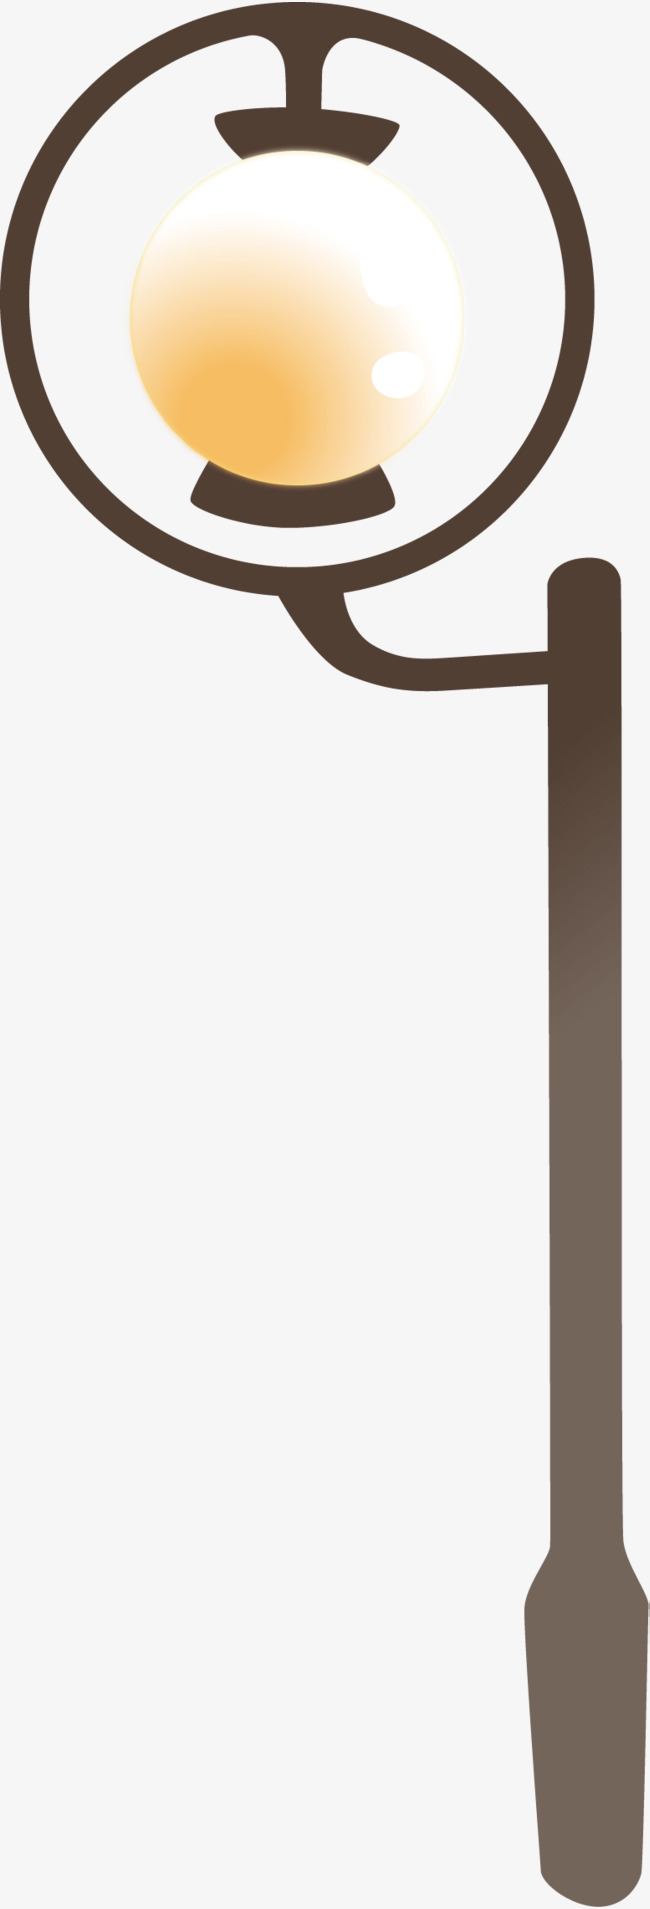 650x1909 Poles Png Vector Elements, Telephone Pole, Vector, Light Png And